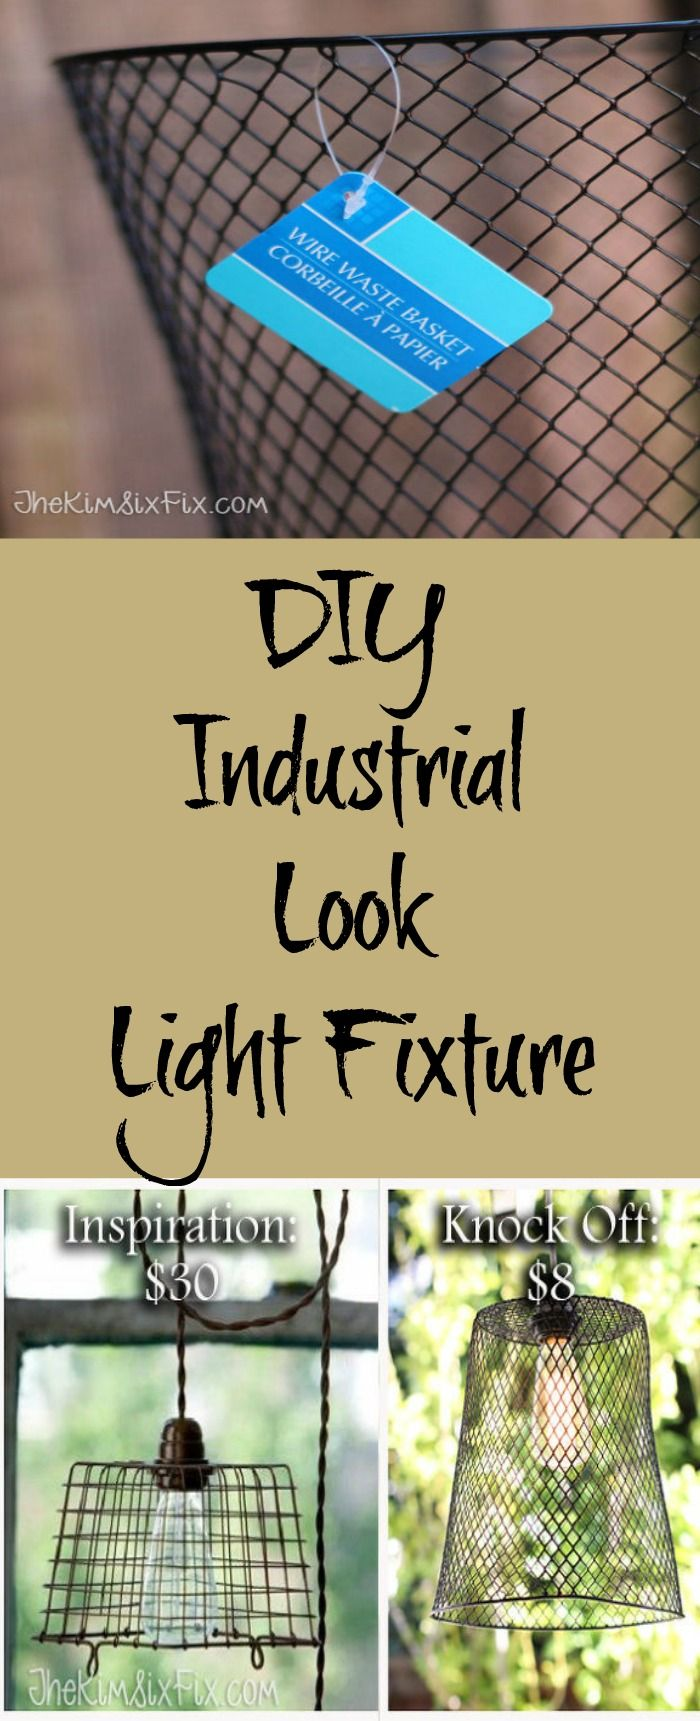 DIY industrial look light fixture for a fraction of the cost of a store-bought one